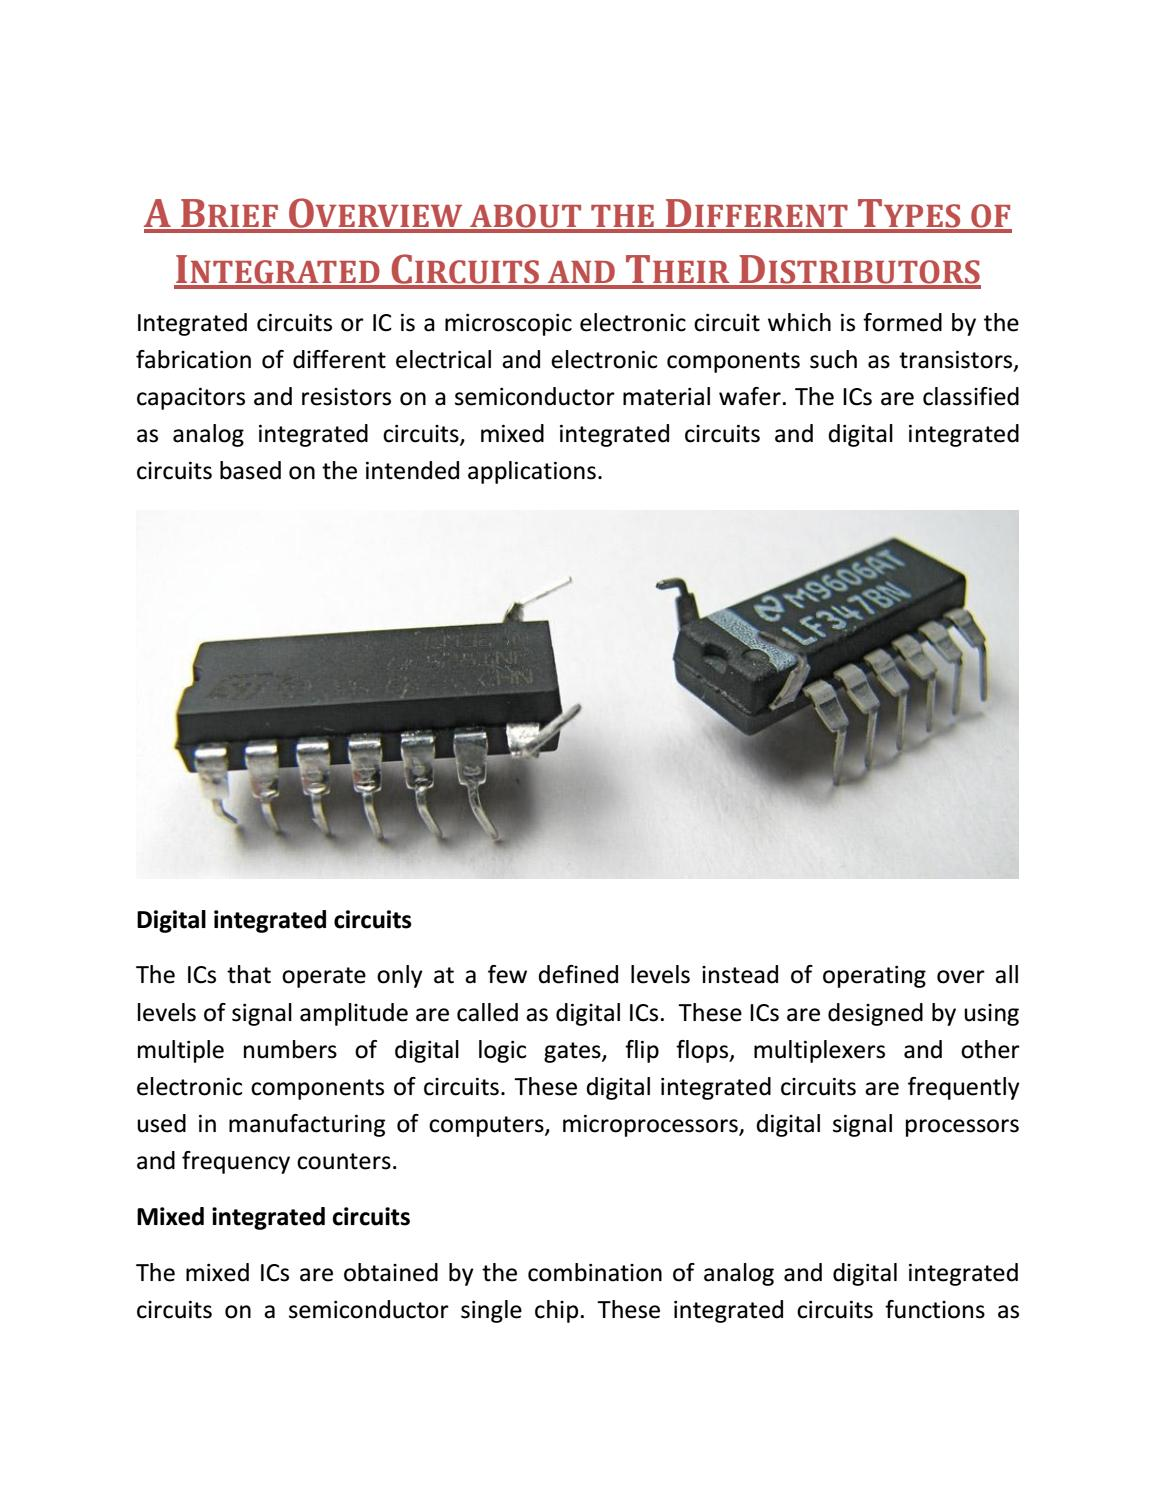 A brief overview about the different types of integrated circuits